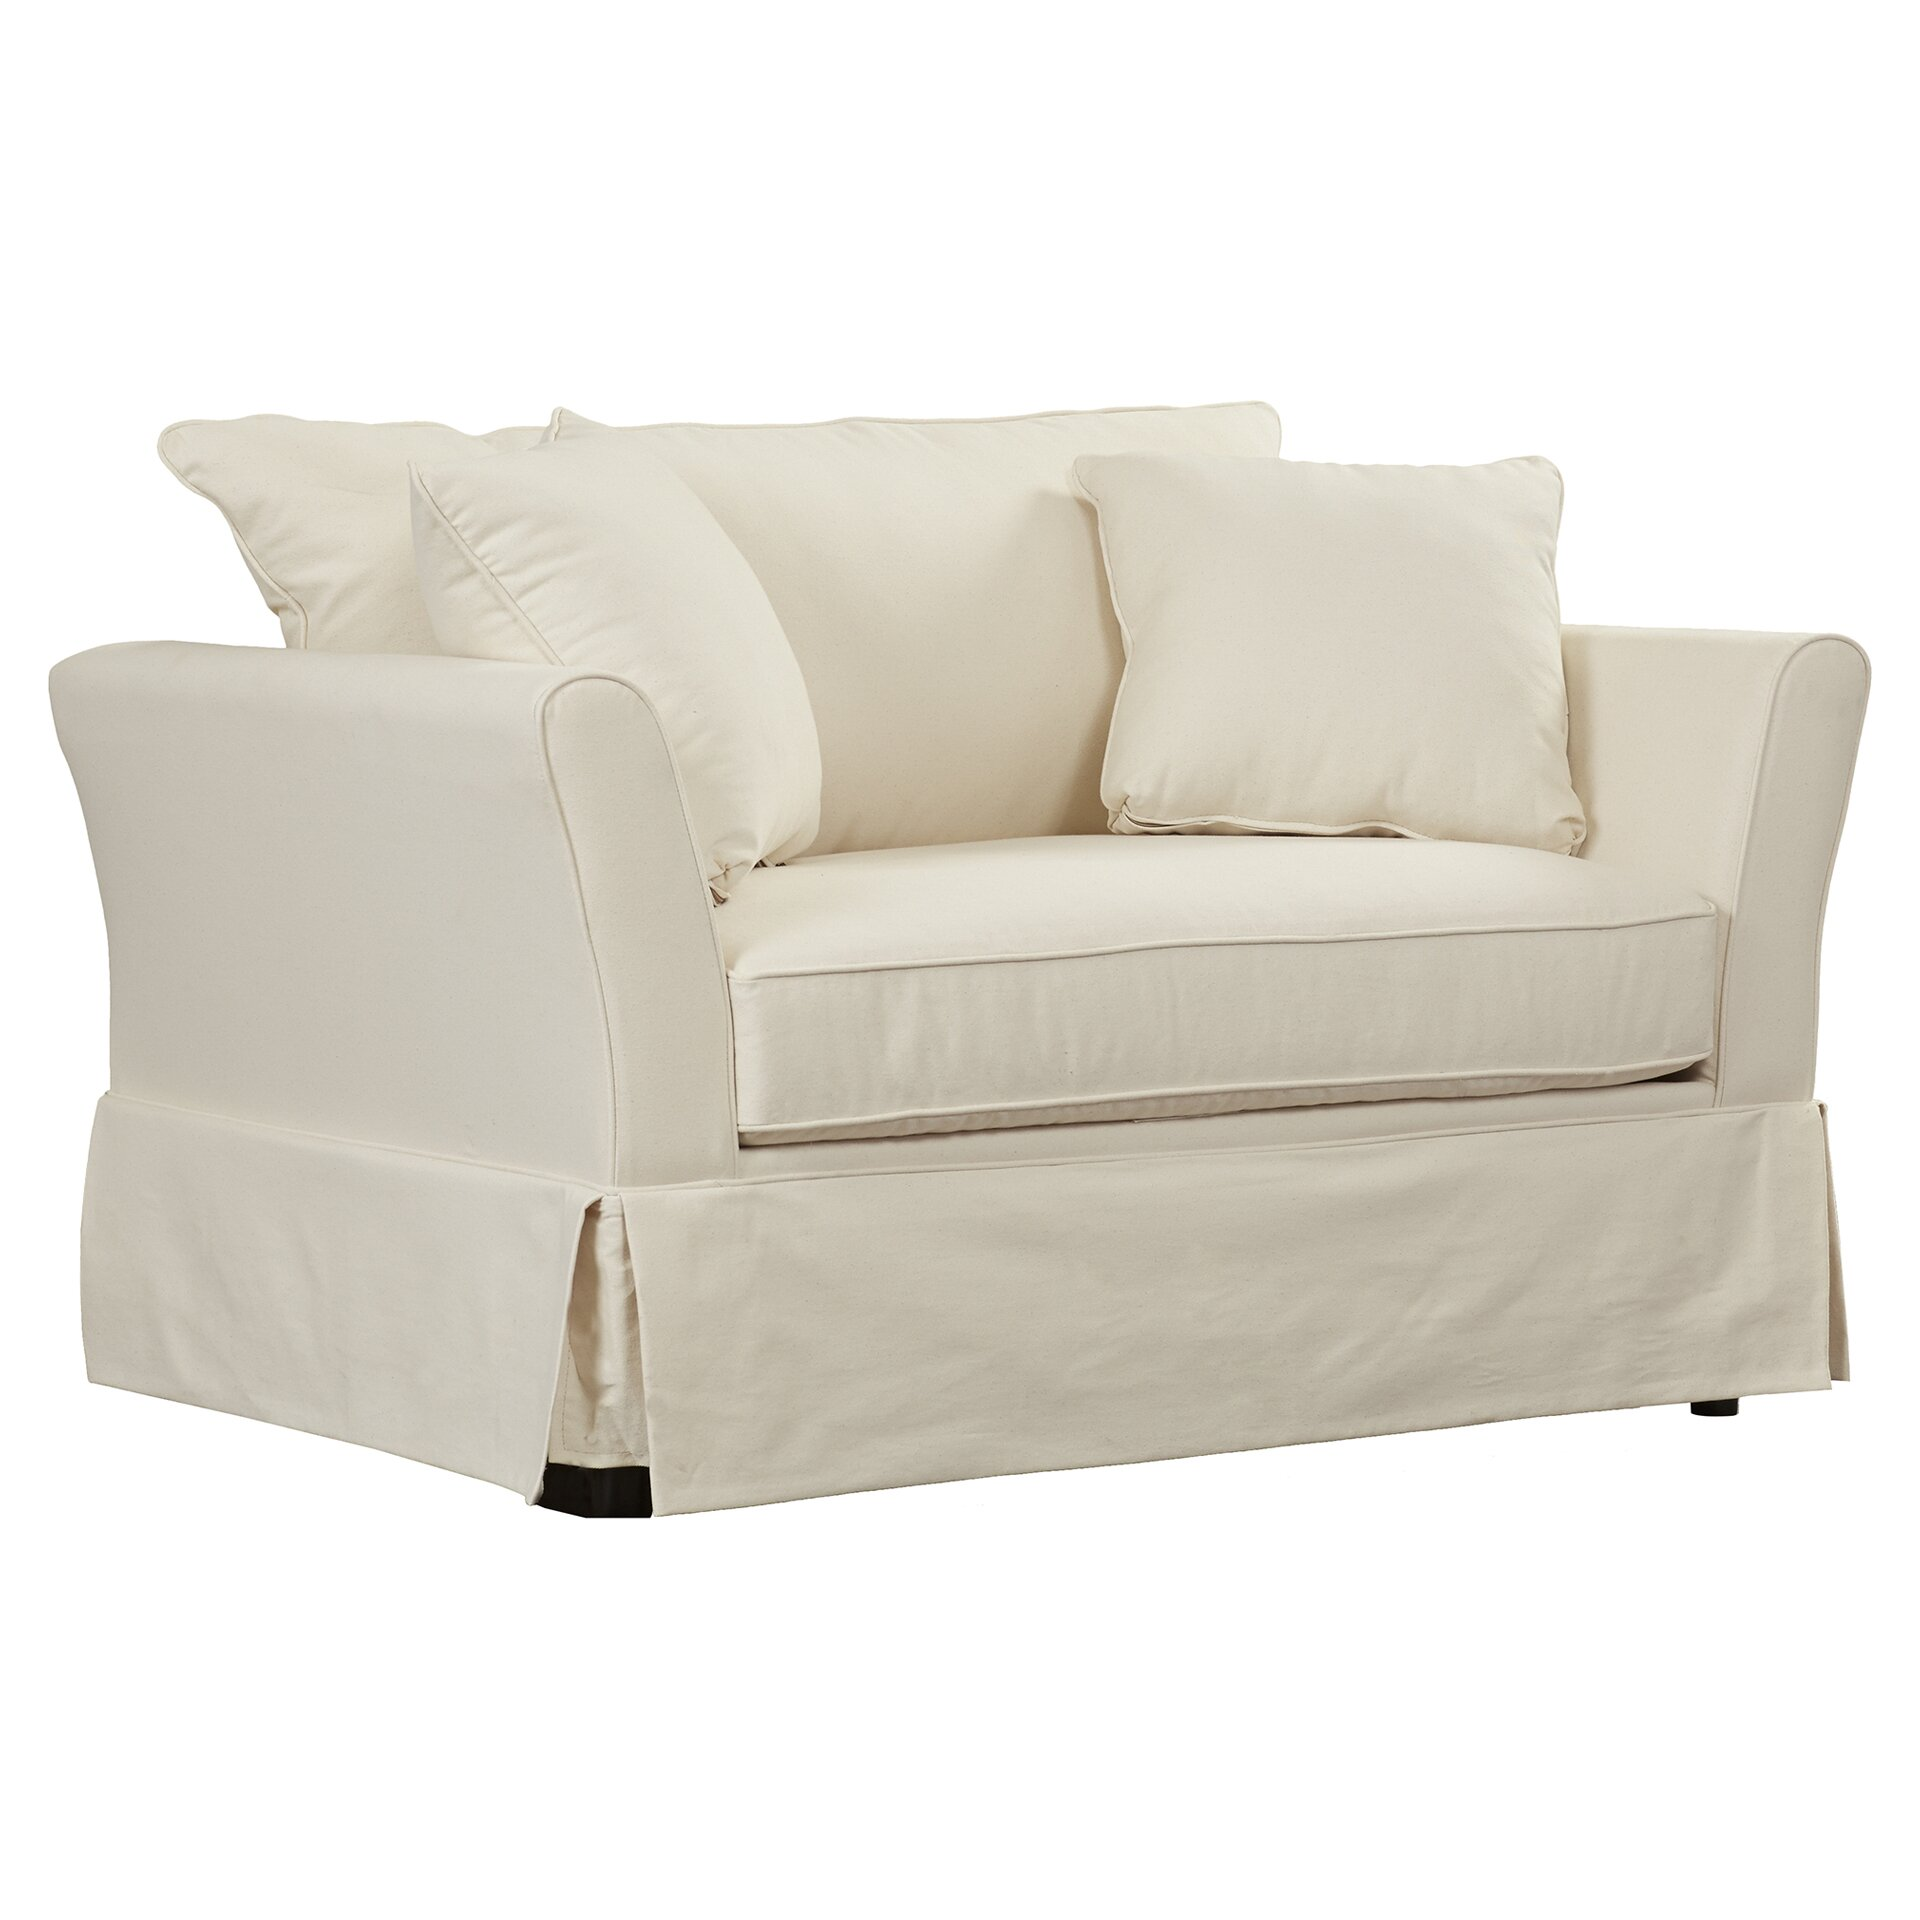 Wayfair Com Sales: Wayfair Custom Upholstery Shelby Chair And A Half